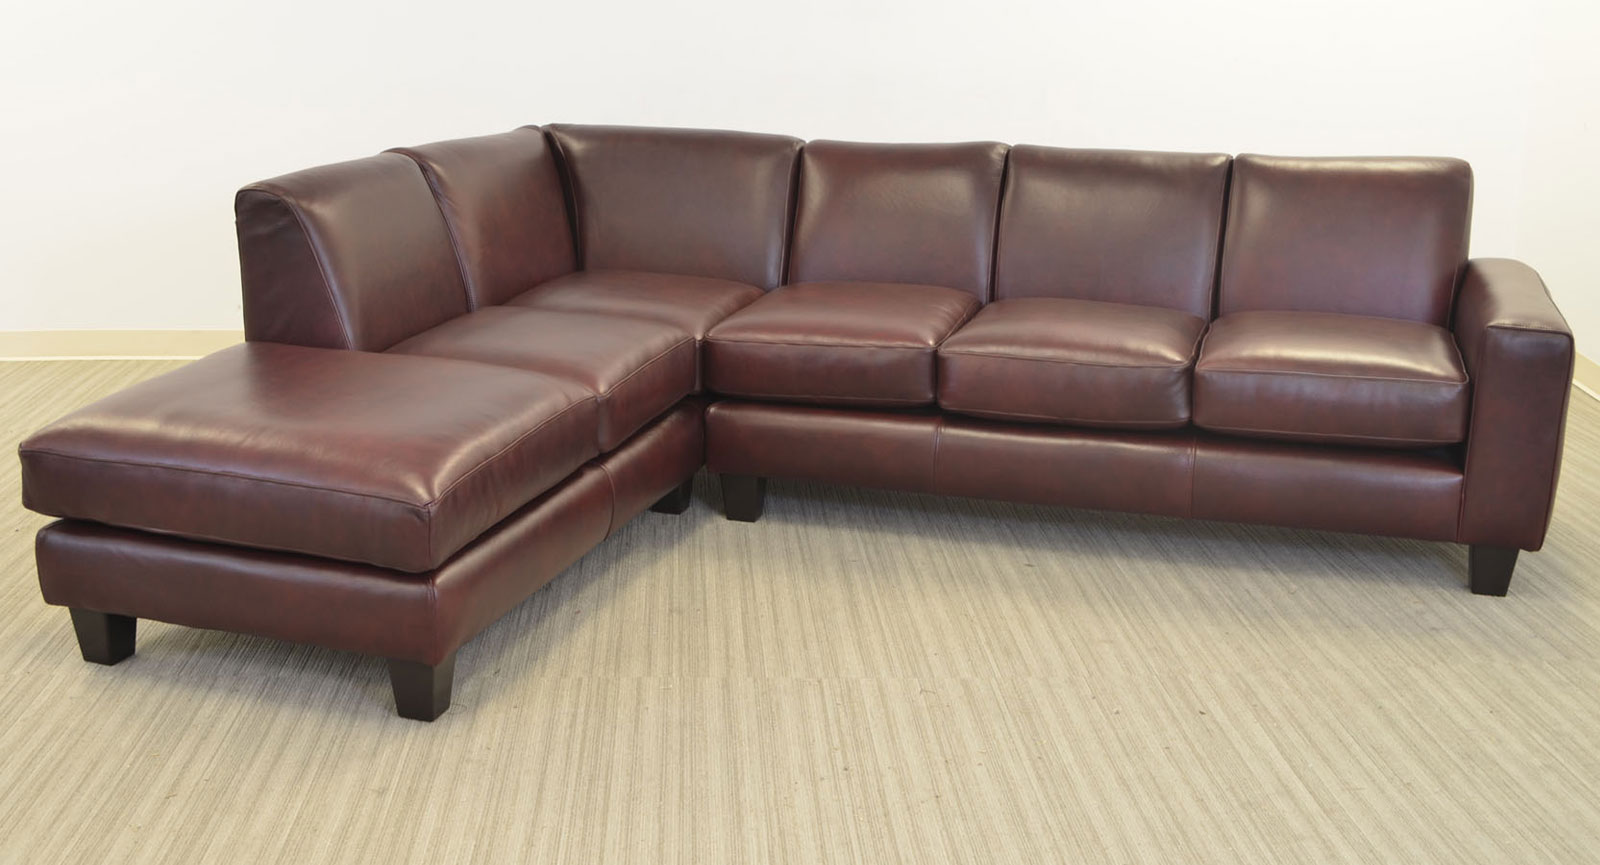 Elegante sofa the leather sofa company for 4 seat sectional sofa chaise